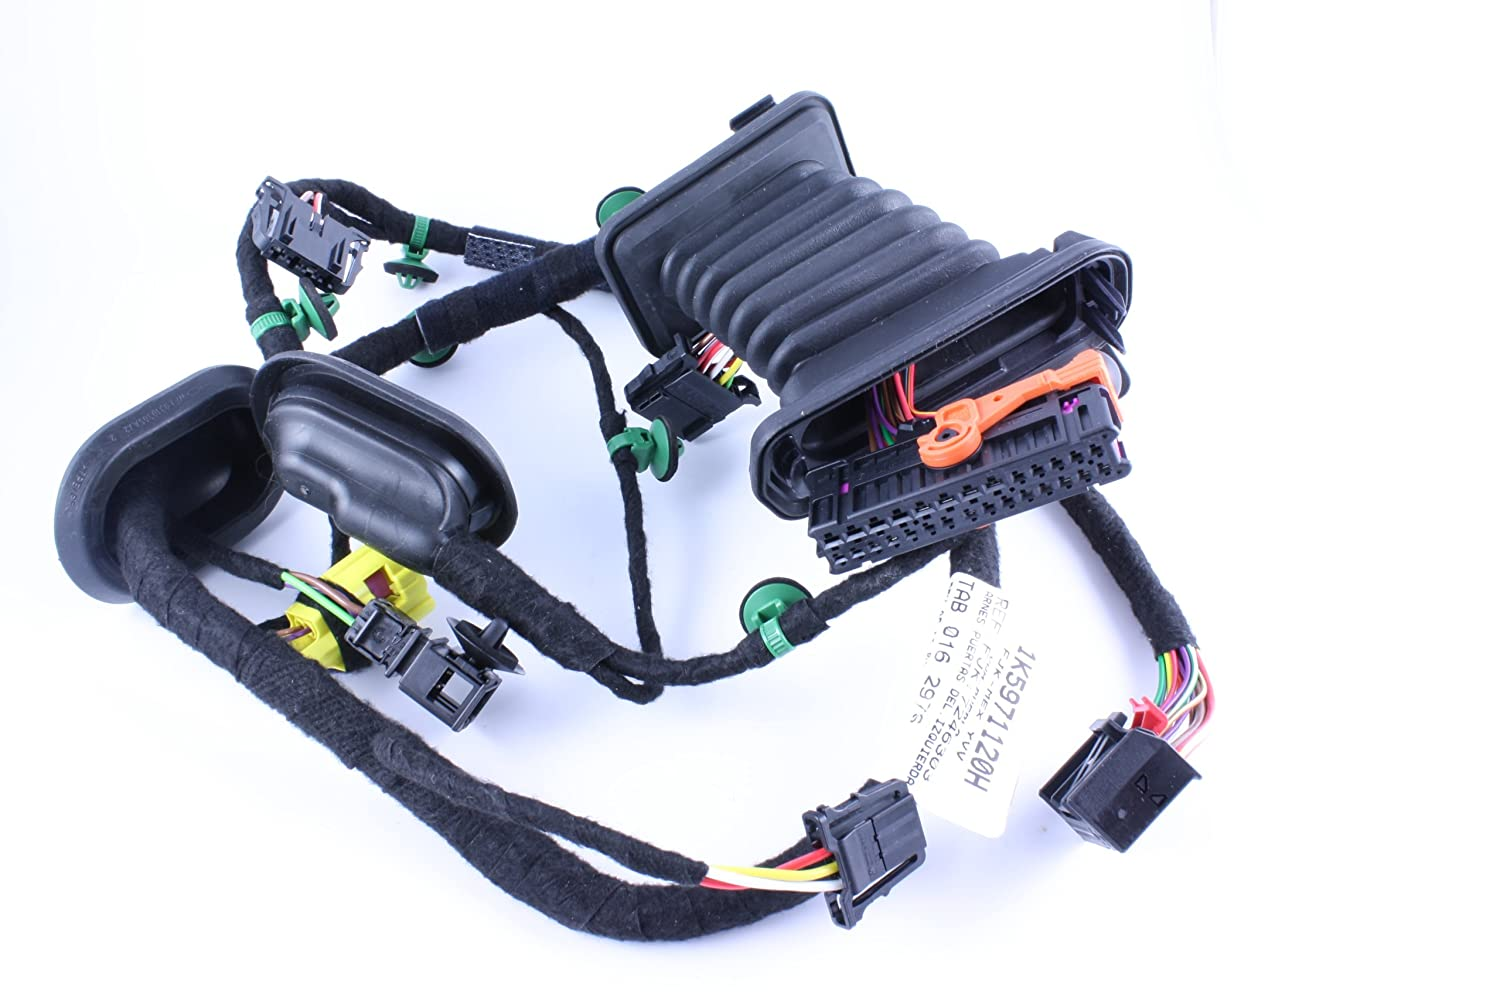 81nbhs5WbzL._SL1500_ amazon com genuine volkswagen drivers side door harness 1k5 971 Chevy Wiring Harness for 1999 Sierra Door at n-0.co